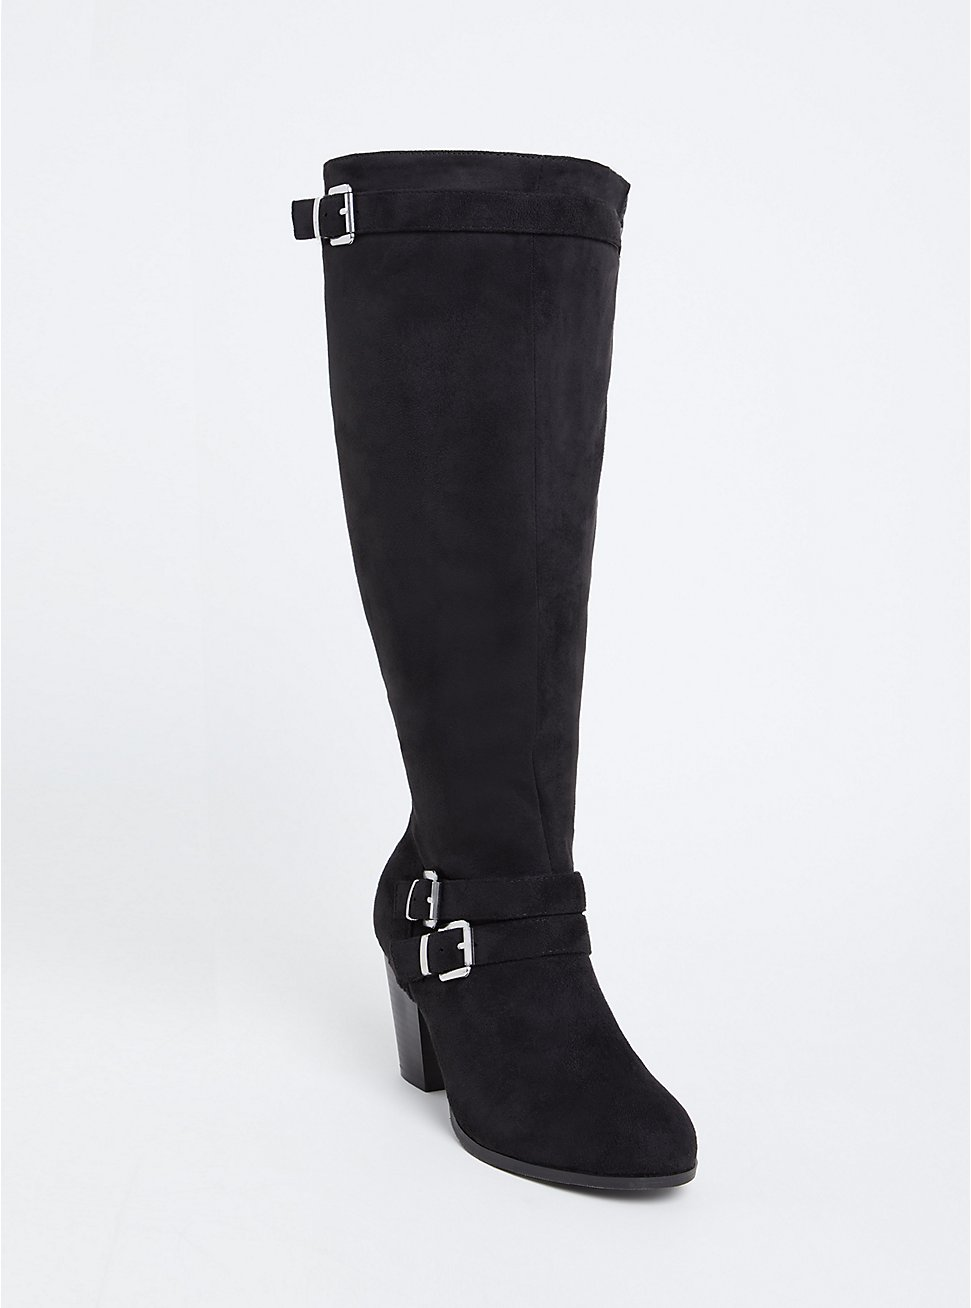 Black Faux Suede Strappy Tall Block Heel Boot (WW & Wide to Extra Wide Calf), BLACK, hi-res